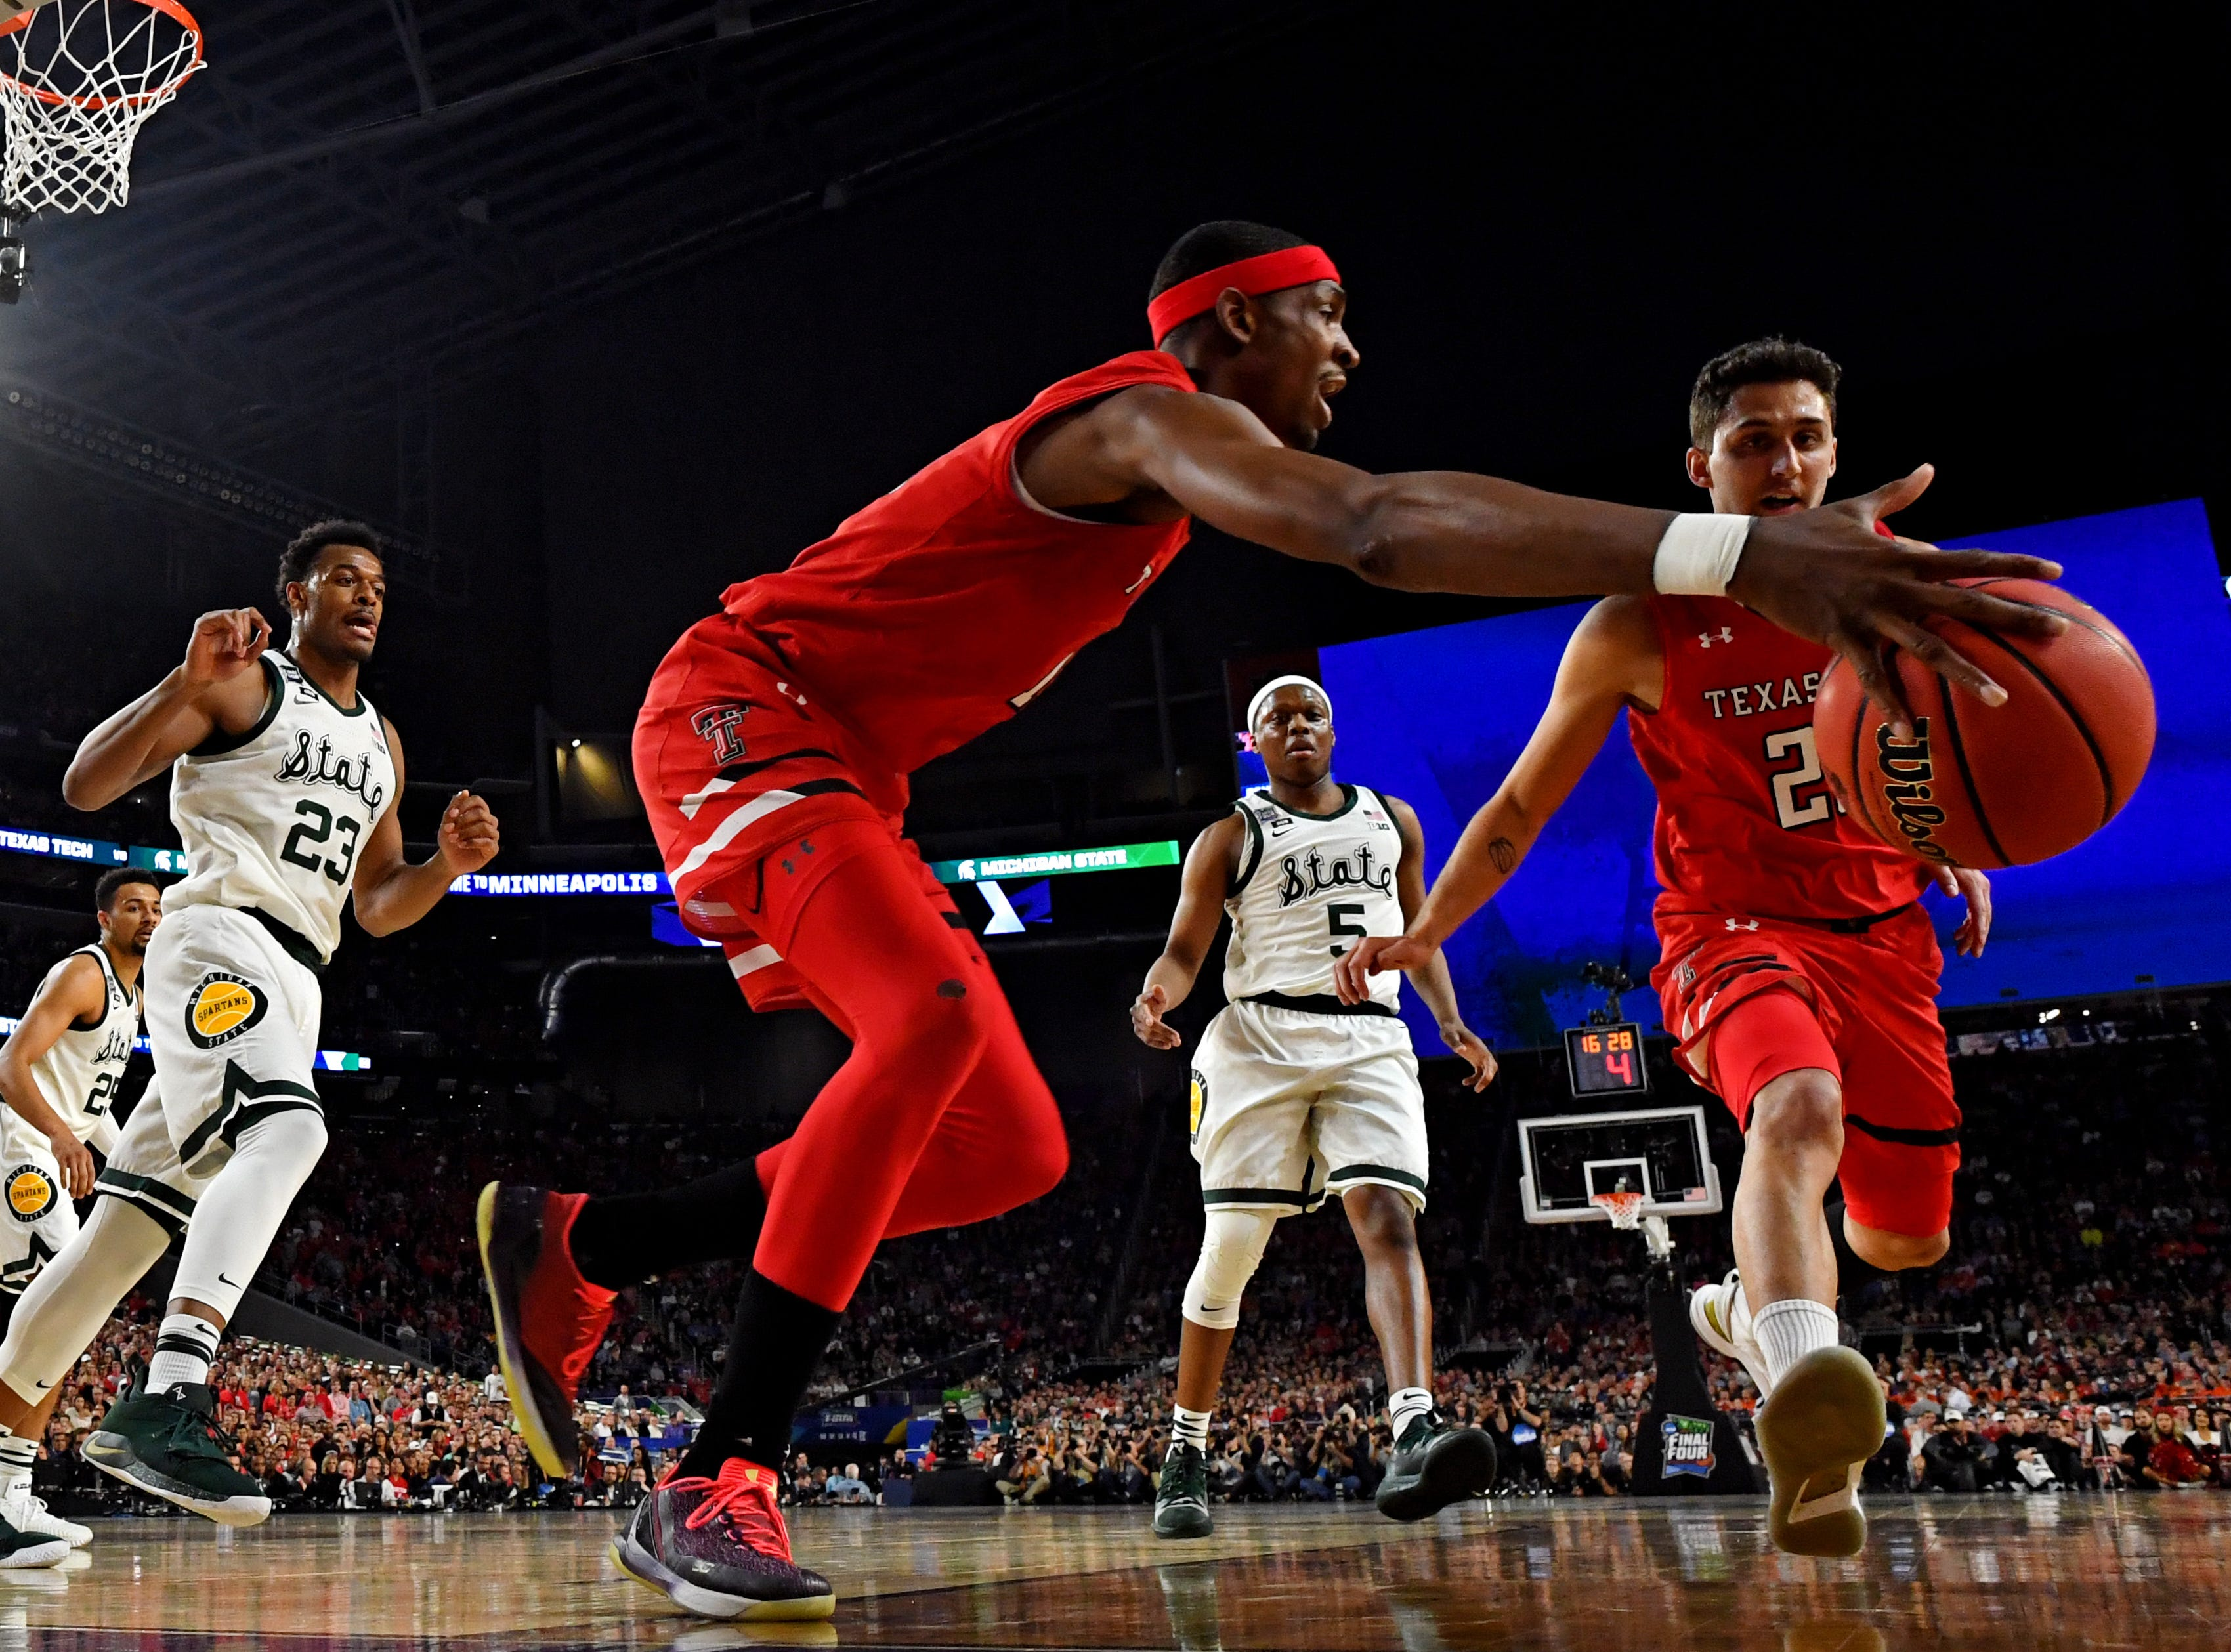 Apr 6, 2019; Minneapolis, MN, USA; Texas Tech Red Raiders forward Tariq Owens (11) and guard Davide Moretti (25) go for loose ball against Michigan State Spartans guard Cassius Winston (5) during the first half in the semifinals of the 2019 men's Final Four at US Bank Stadium. Mandatory Credit: Bob Donnan-USA TODAY Sports